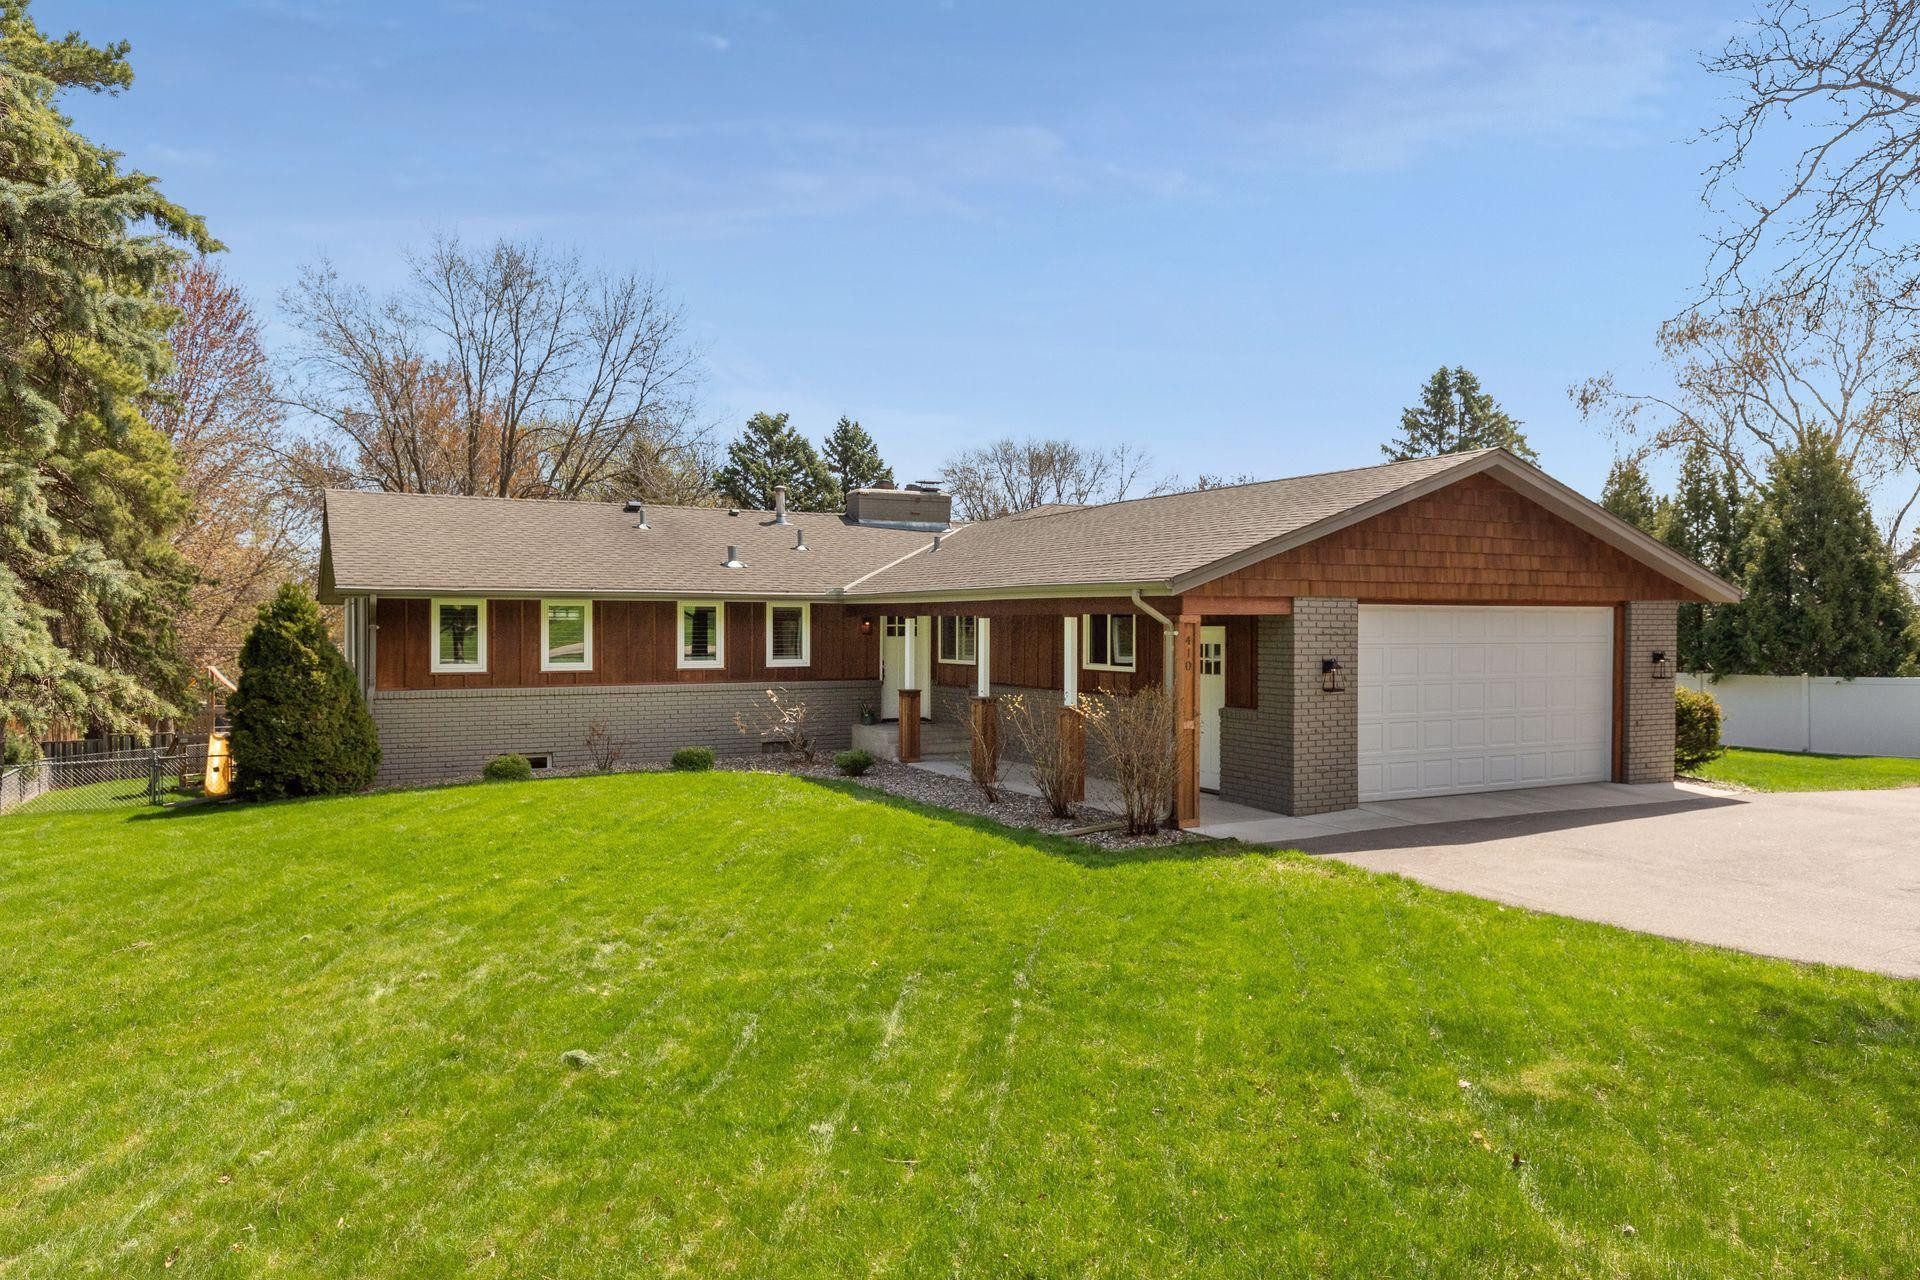 410 Narcissus Lane N, Plymouth, MN 55447